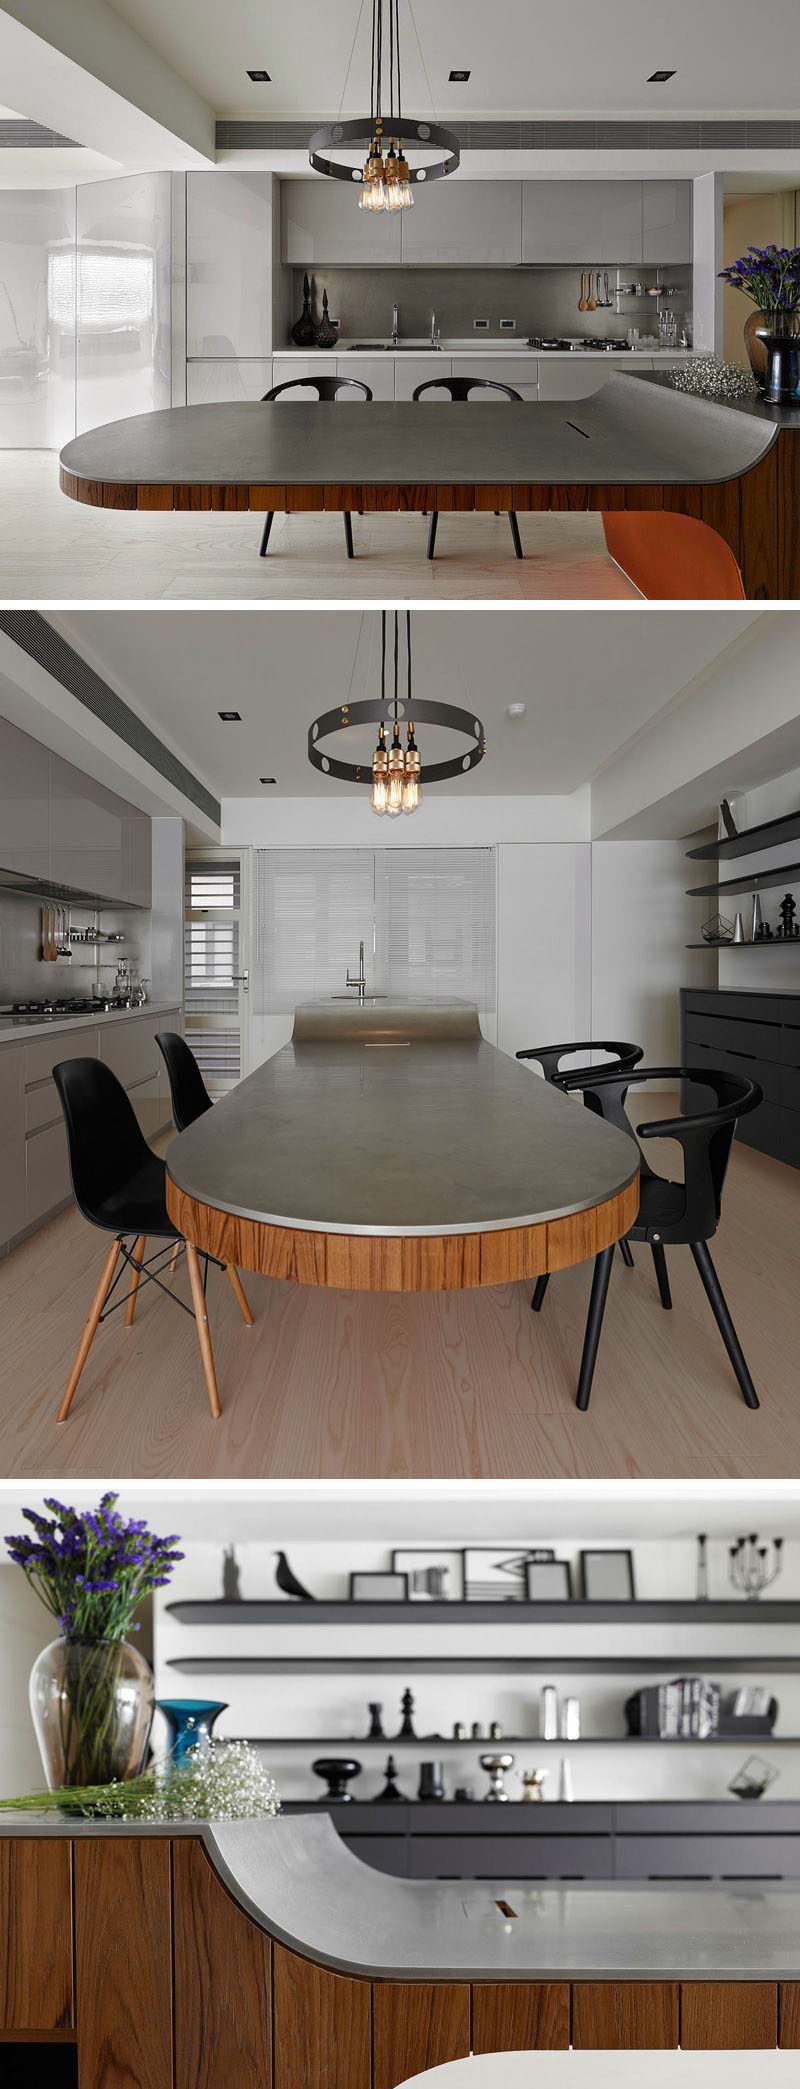 11 Creative Concrete Countertop Designs To Inspire You // A thin layer of concrete covers this wood island, before curving down and cantilevering away from the kitchen island. The extended concrete countertop also becomes a place for serving meals.